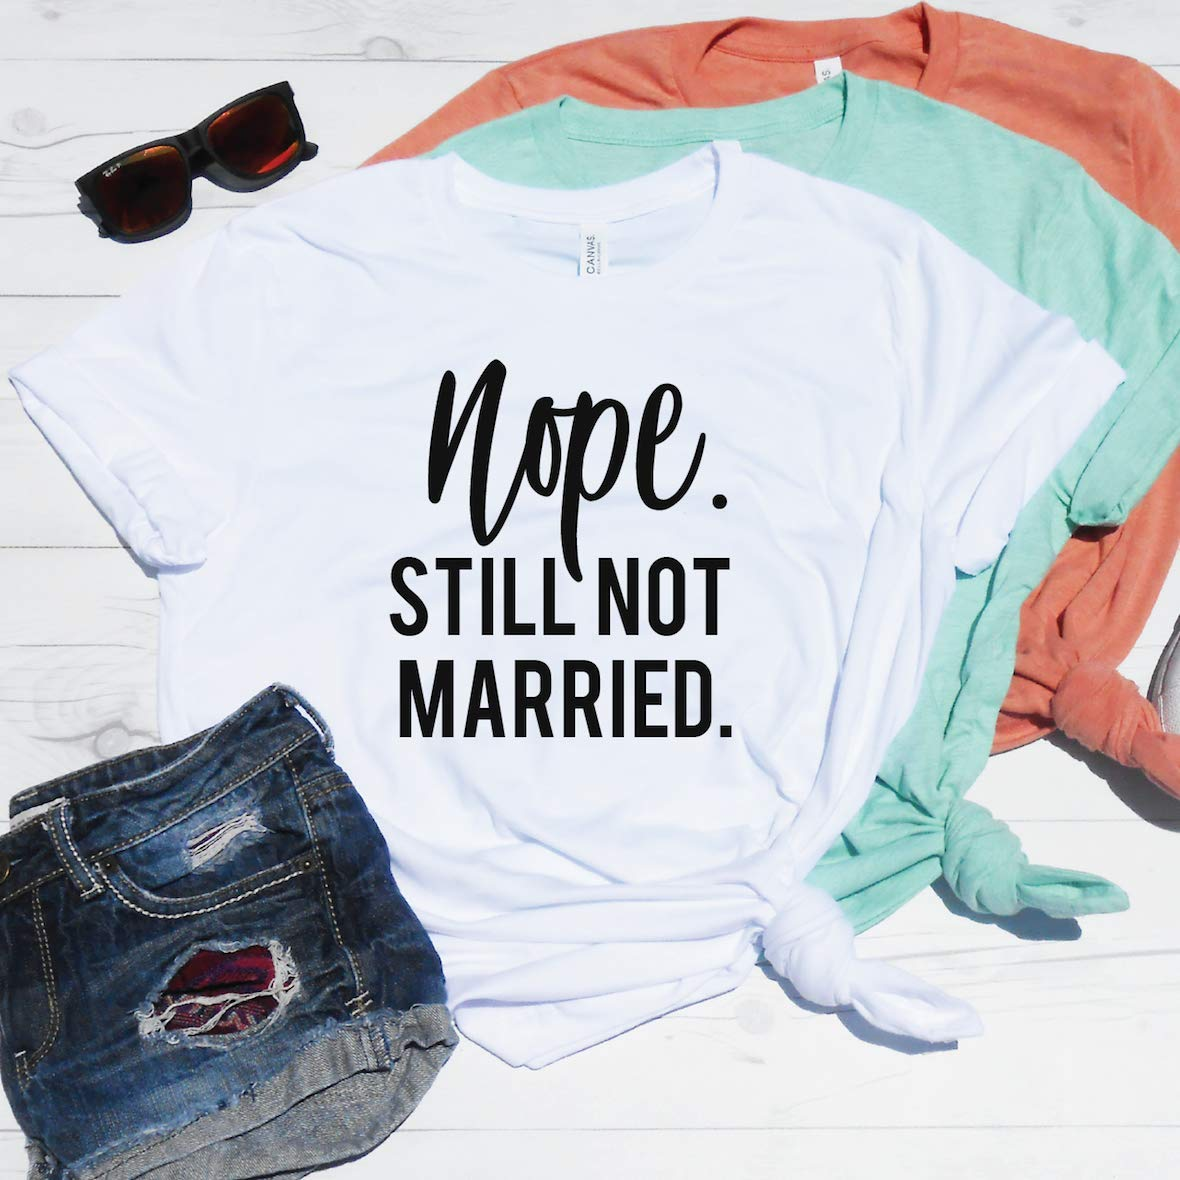 aed46a2f9 Amazon.com: Nope Still Not Married T-Shirt, Funny Holiday Shirt, Not  Married Yet Shirt, Still Not Married, Thanksgiving Christmas Dinner Shirt:  Handmade